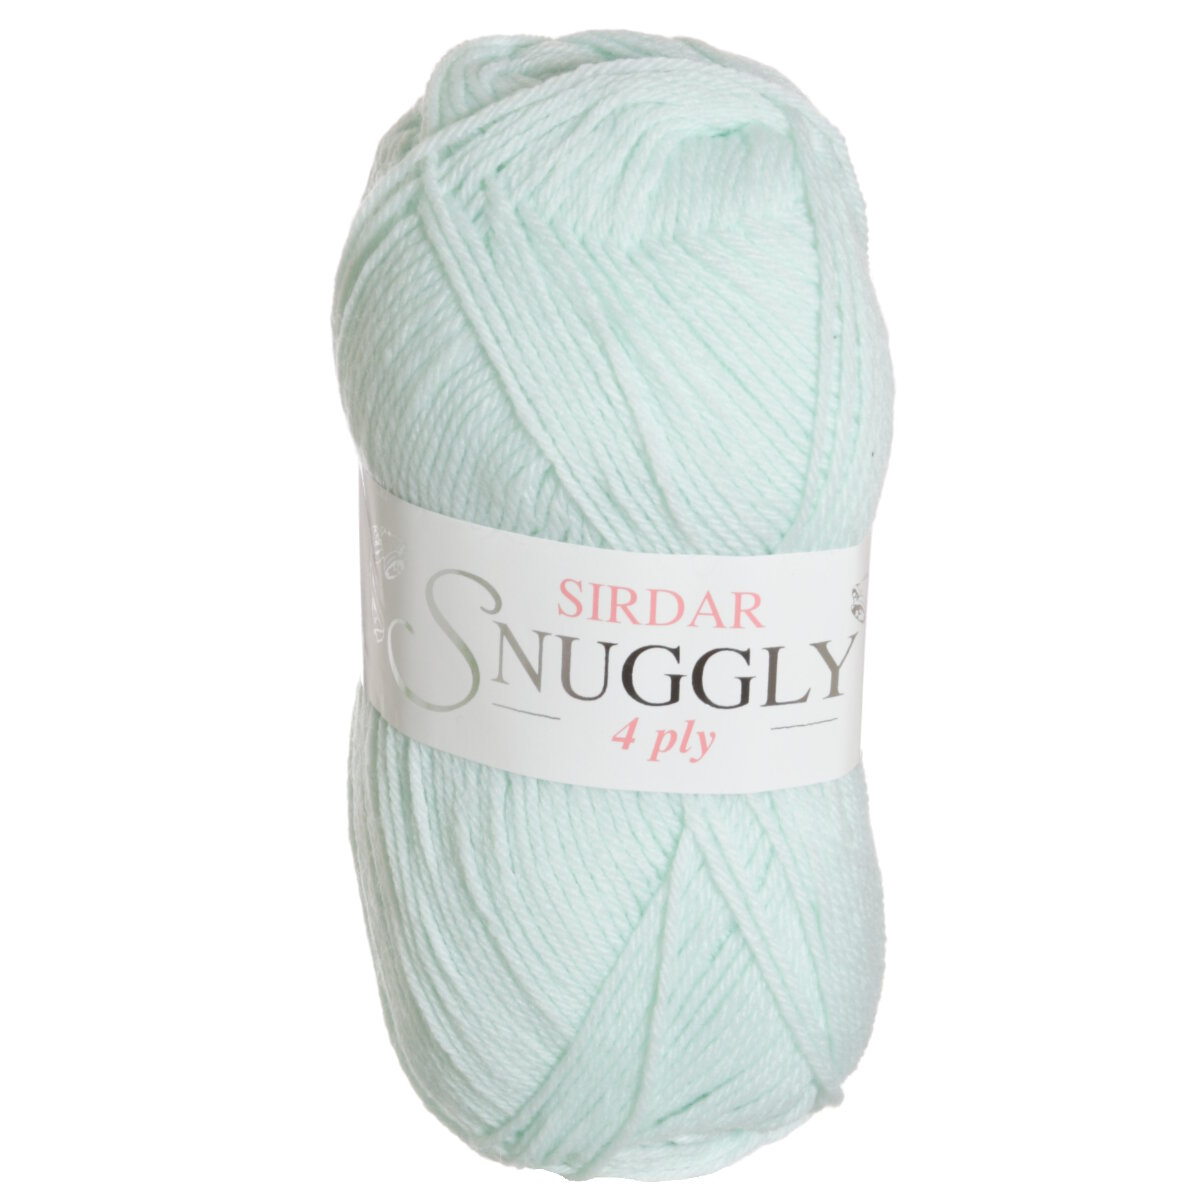 Sirdar Snuggly 4 Ply Wool - Pearly Green (304) - 50g - Yarn - Knitting & Crochet